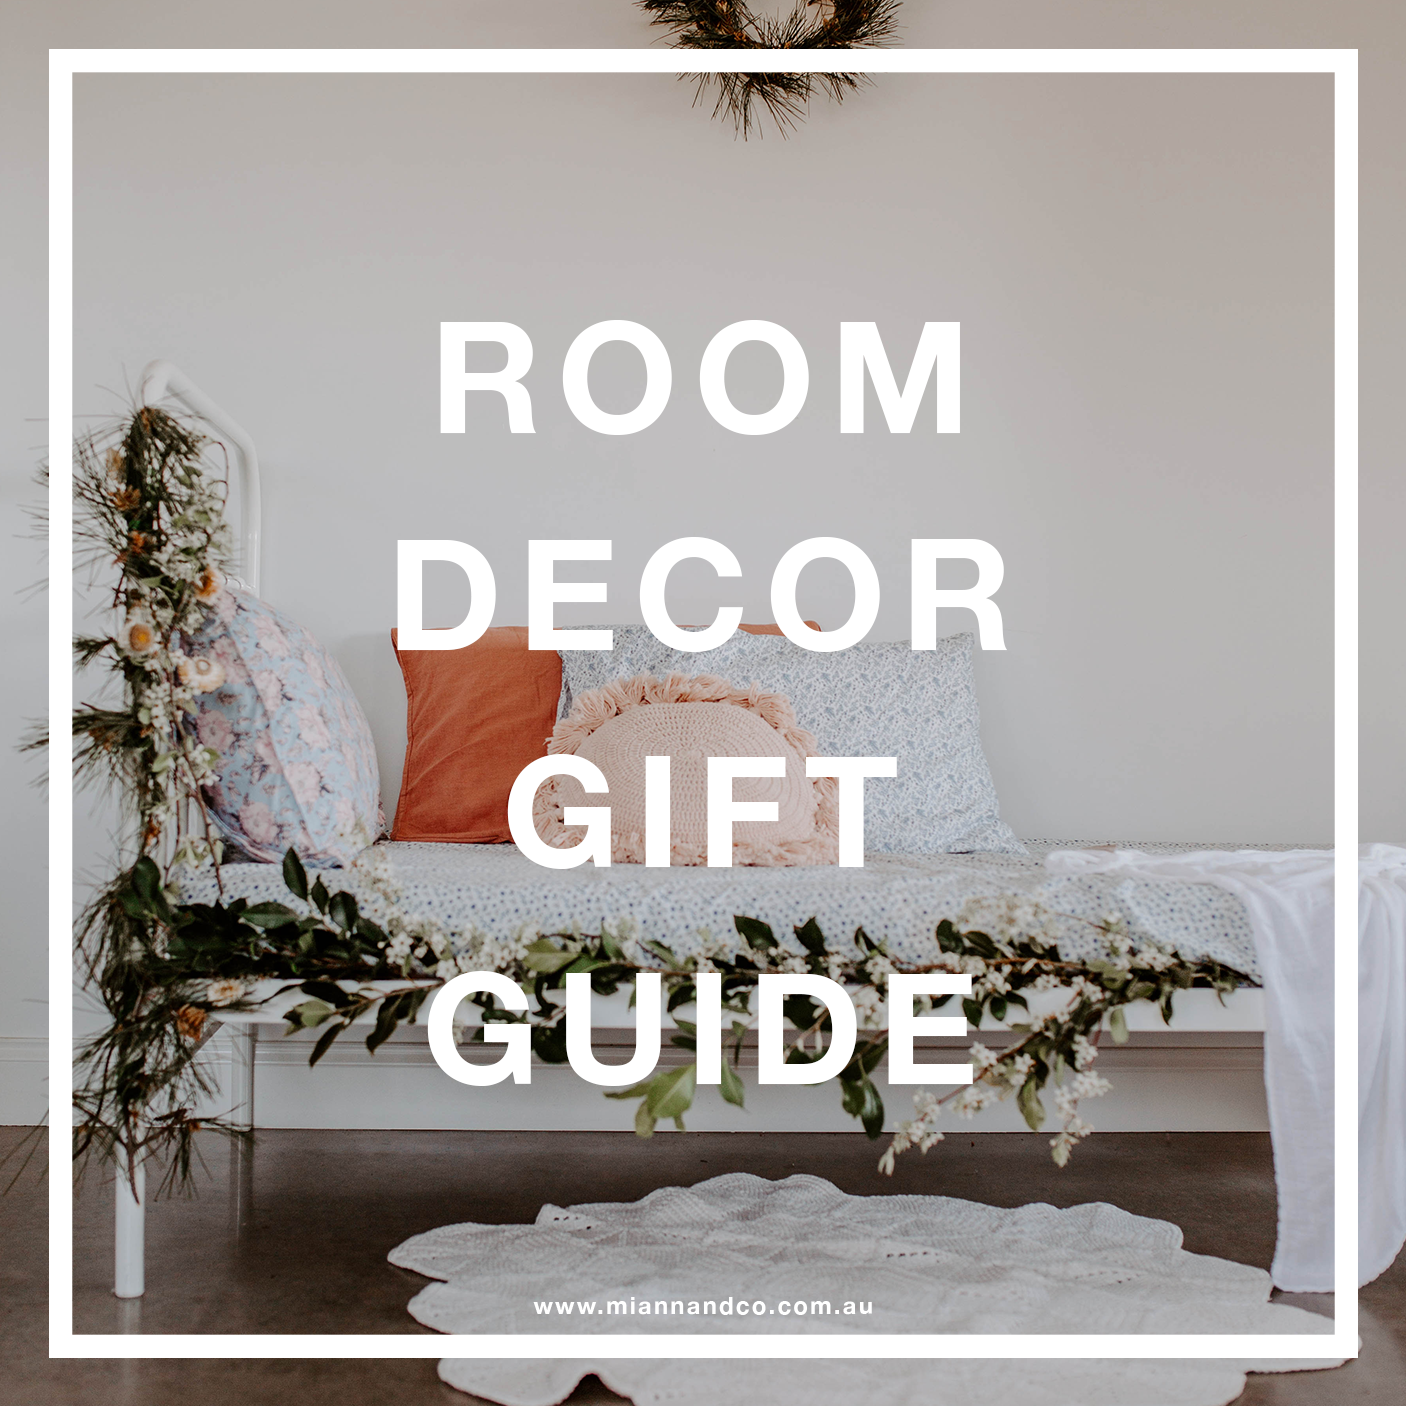 ROOM DECOR GIFT GUIDE